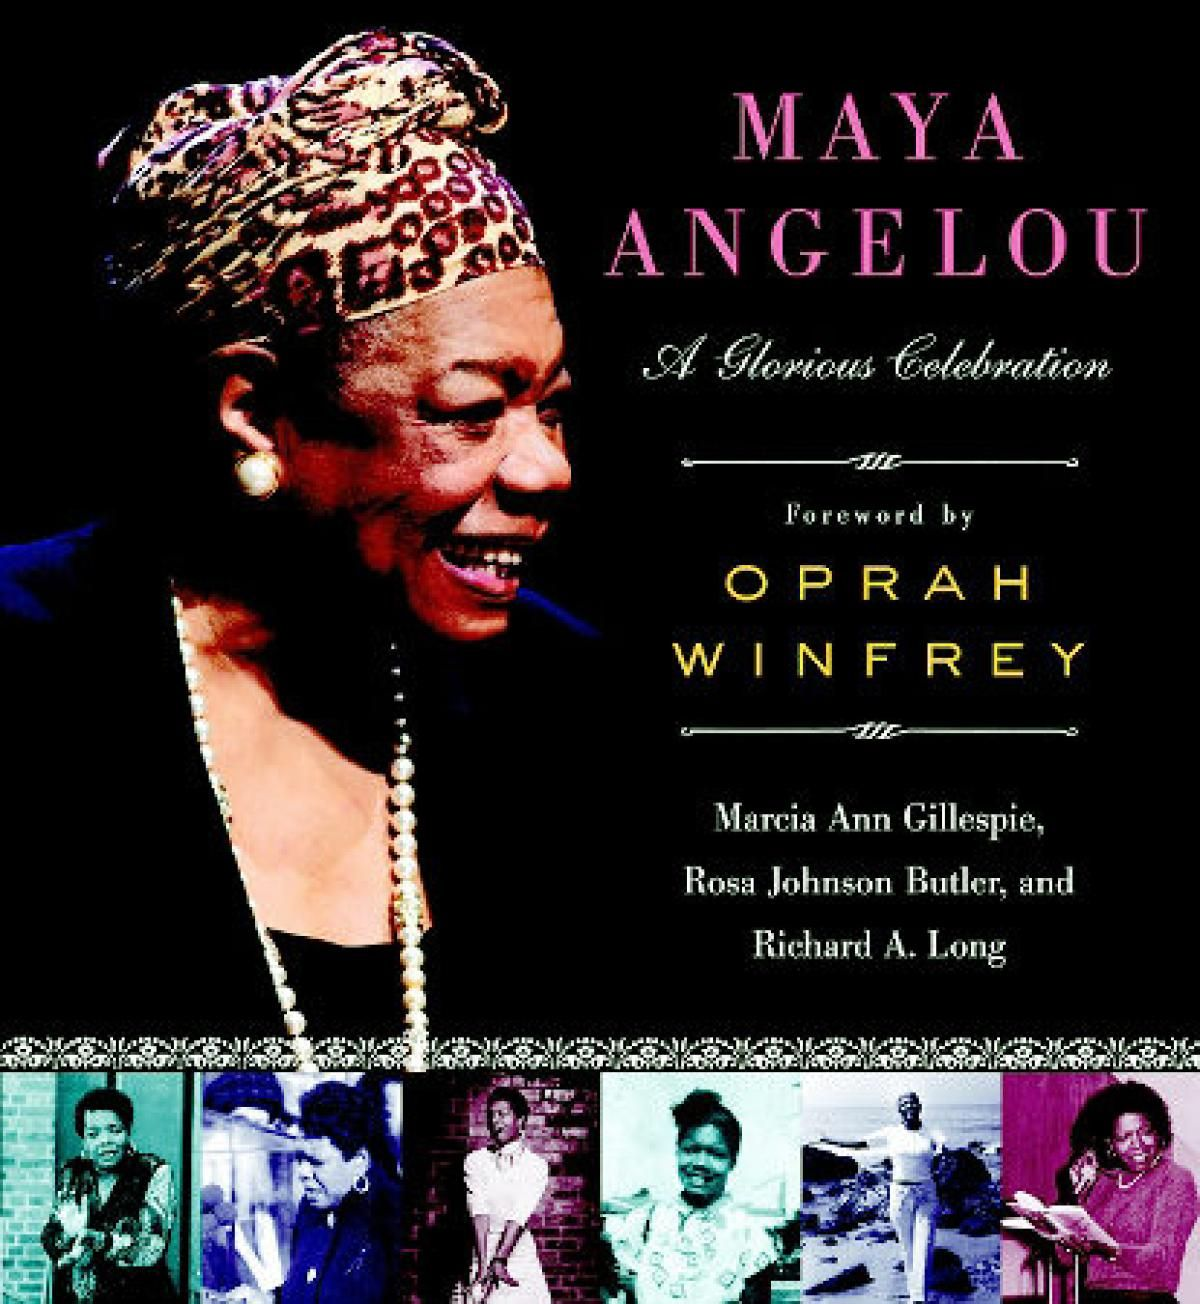 maya angelou biographical approach essay